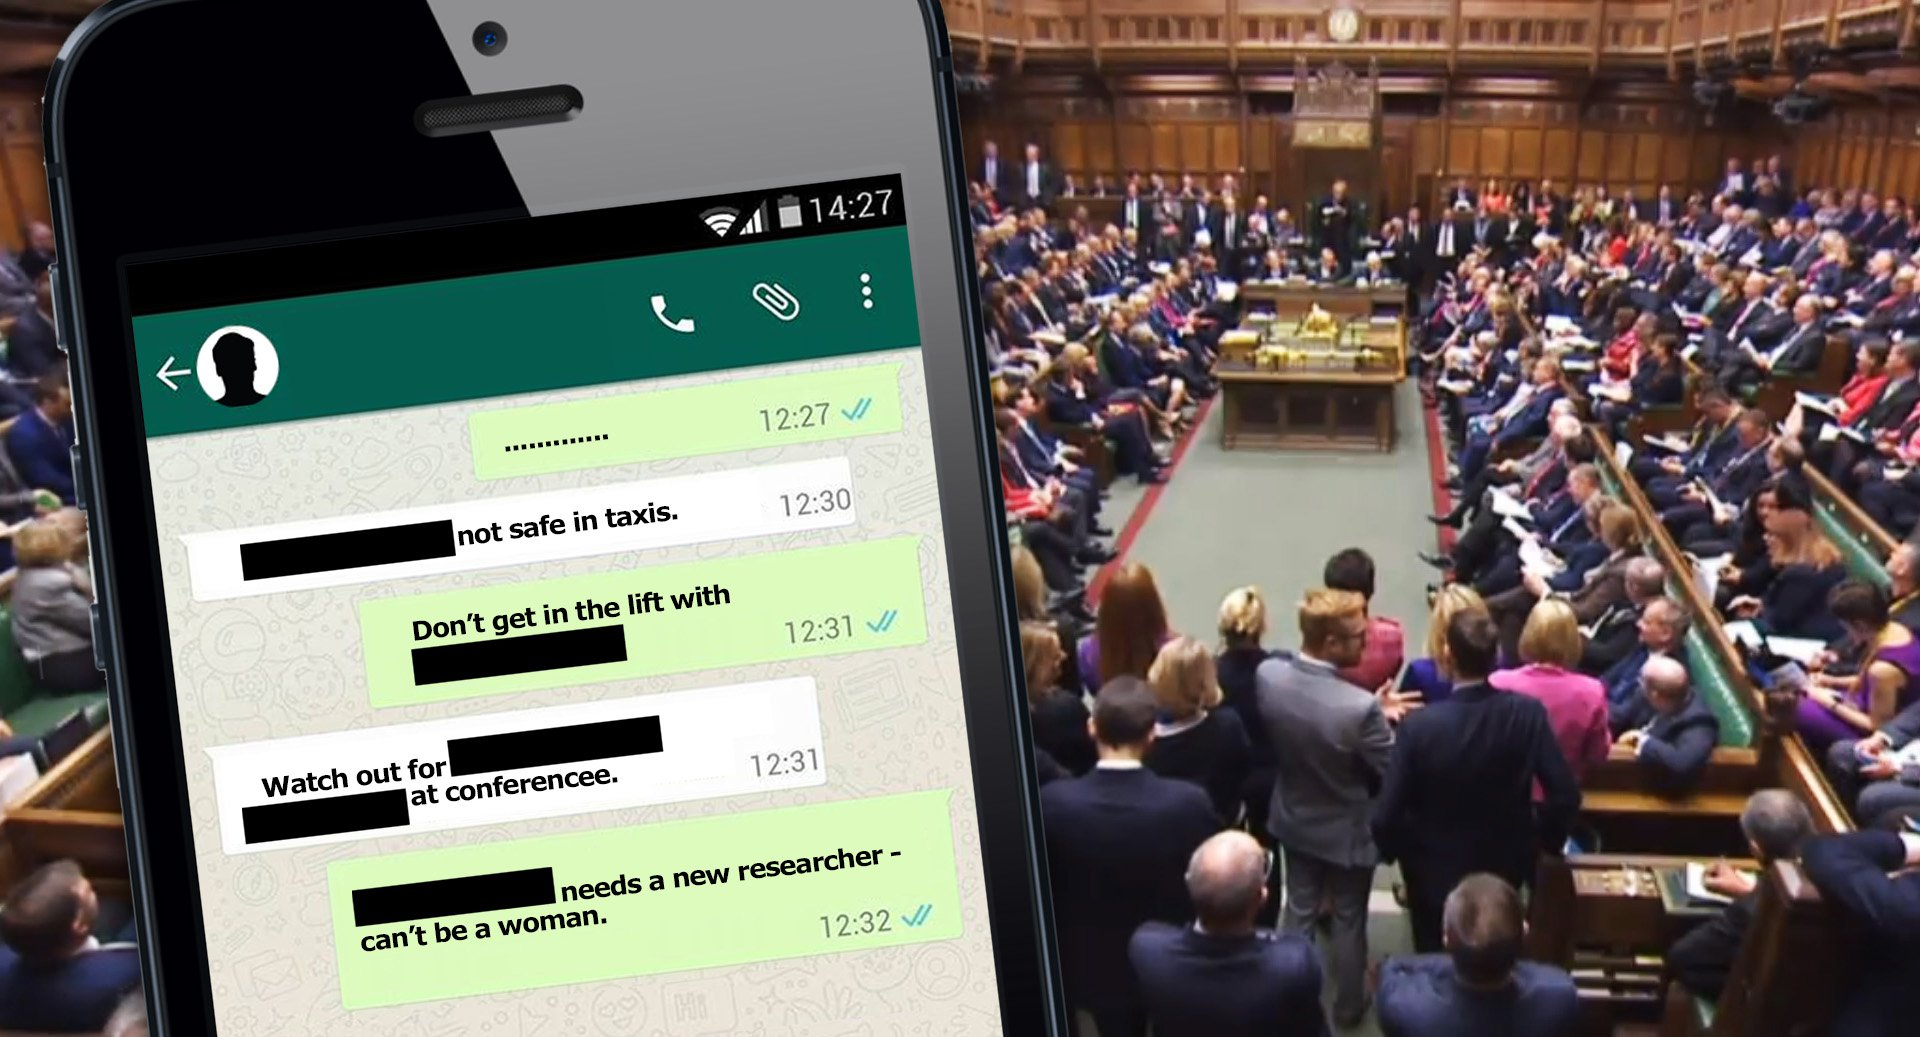 There's a WhatsApp group naming and shaming 'sex pest' MPs